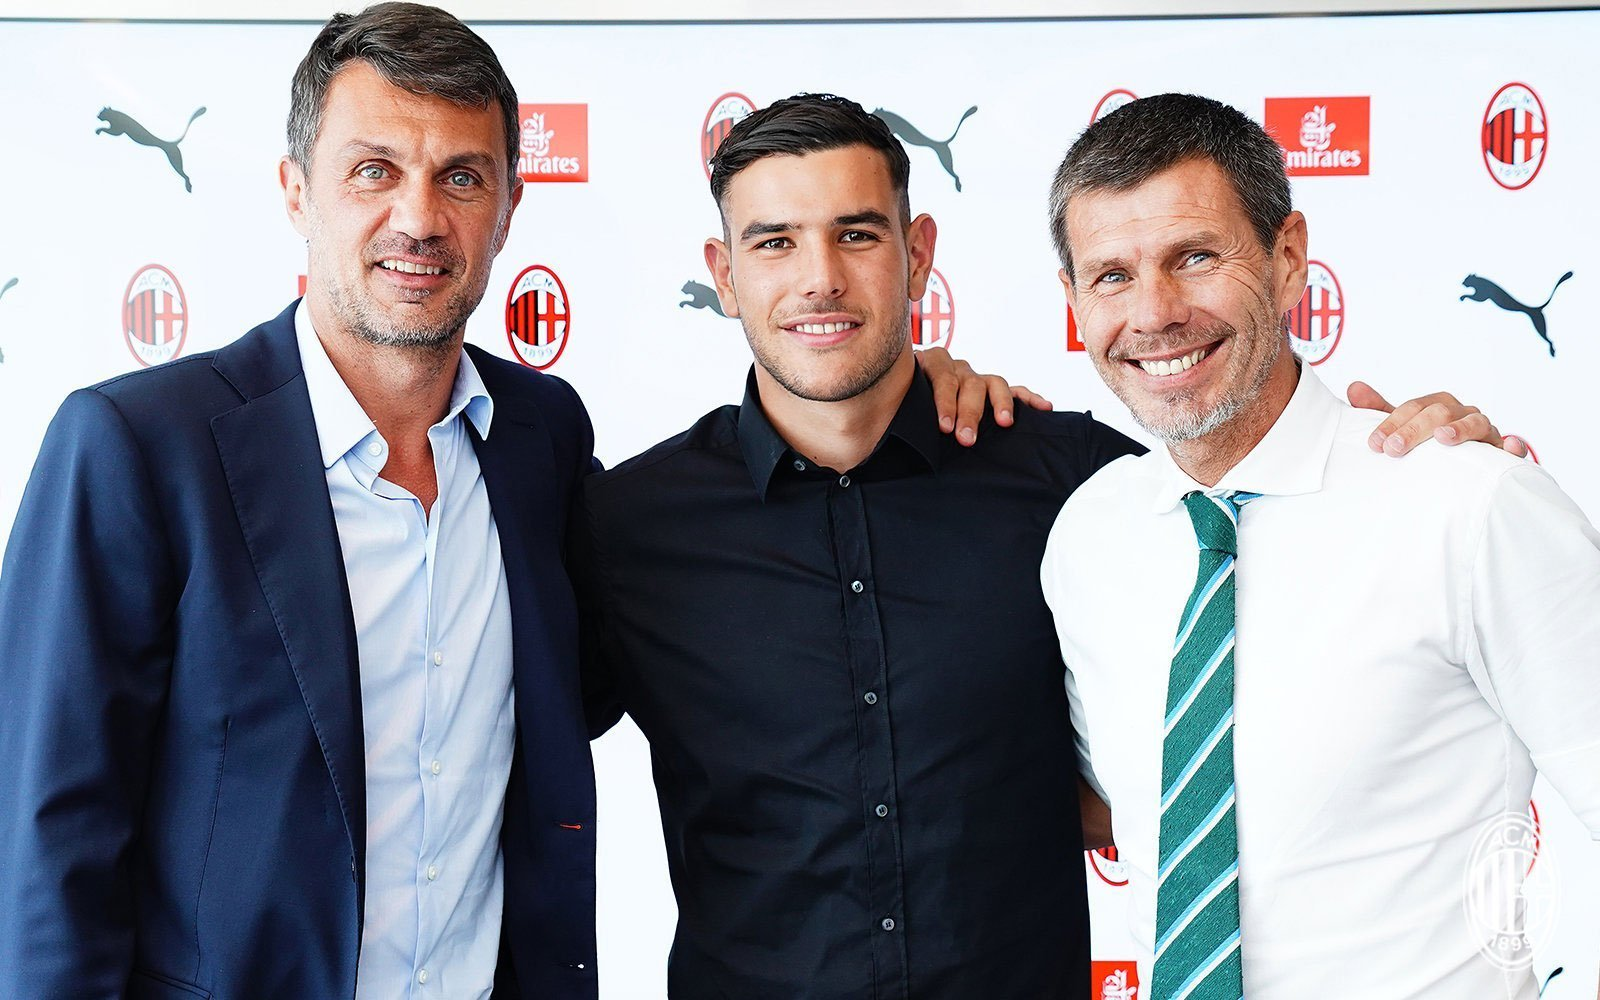 """Maldini: """"No hurry in the mercato, Theo needs to become one of the world's  top 3 fullbacks, no negotiations for Modrić but a profile like him would be  perfect""""   Rossoneri Blog -"""